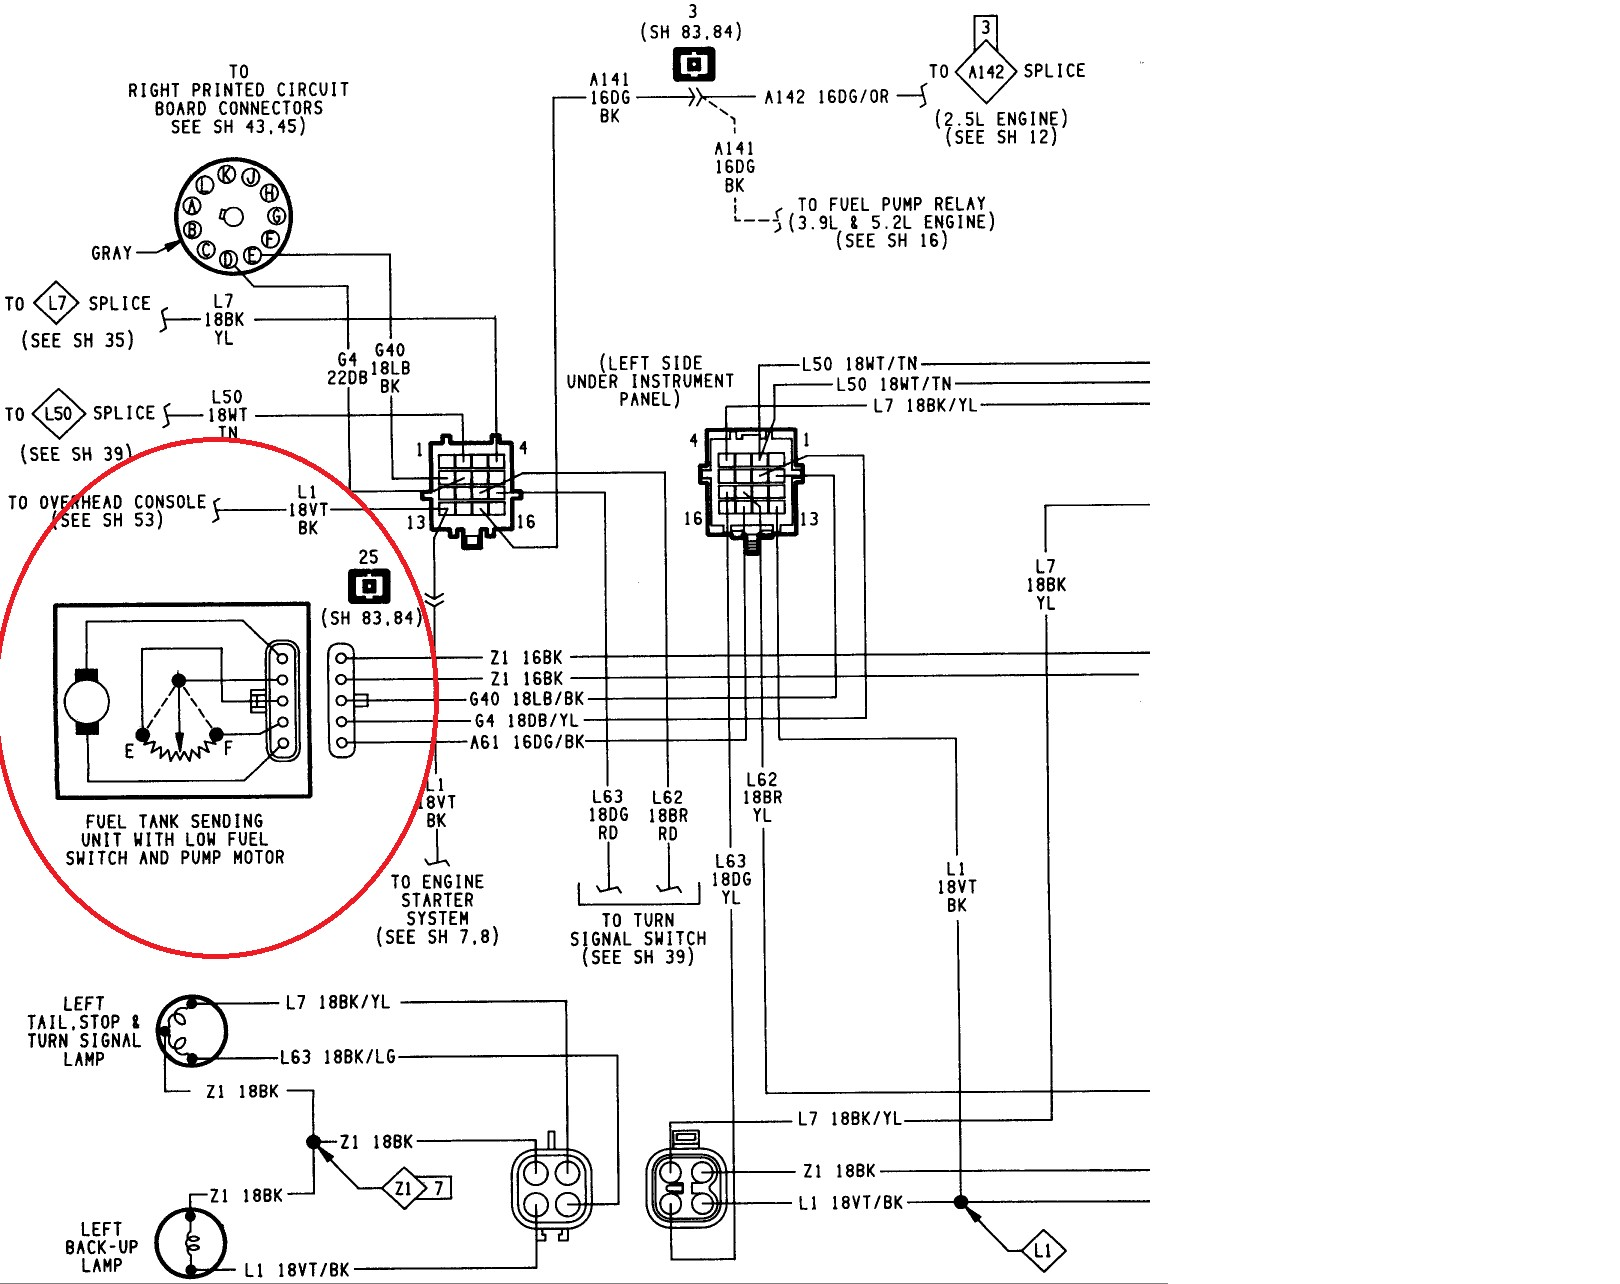 [DIAGRAM_0HG]  Vdo Sending Unit Wiring Diagram 1997 Nissan Truck Wiring Diagram -  2005ram.pisang.astrea-construction.fr | 12 Volt Fuel Gauge Wiring Diagram |  | ASTREA CONSTRUCTION